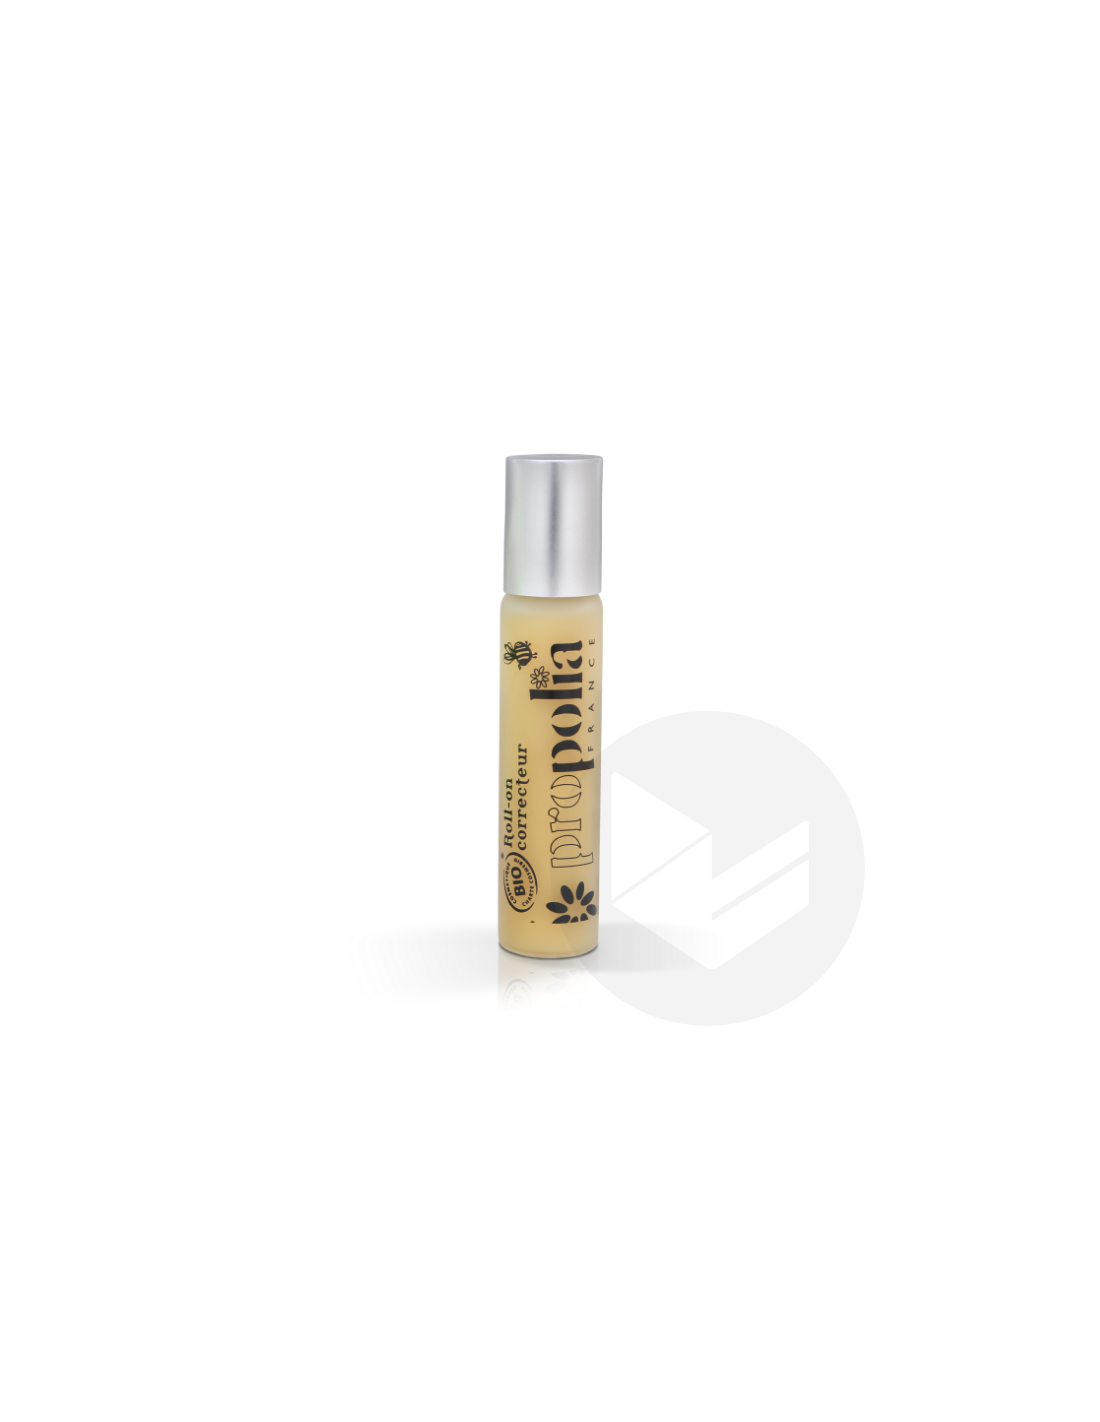 Roll On Sos Imperfections Bio Roll On 15 Ml